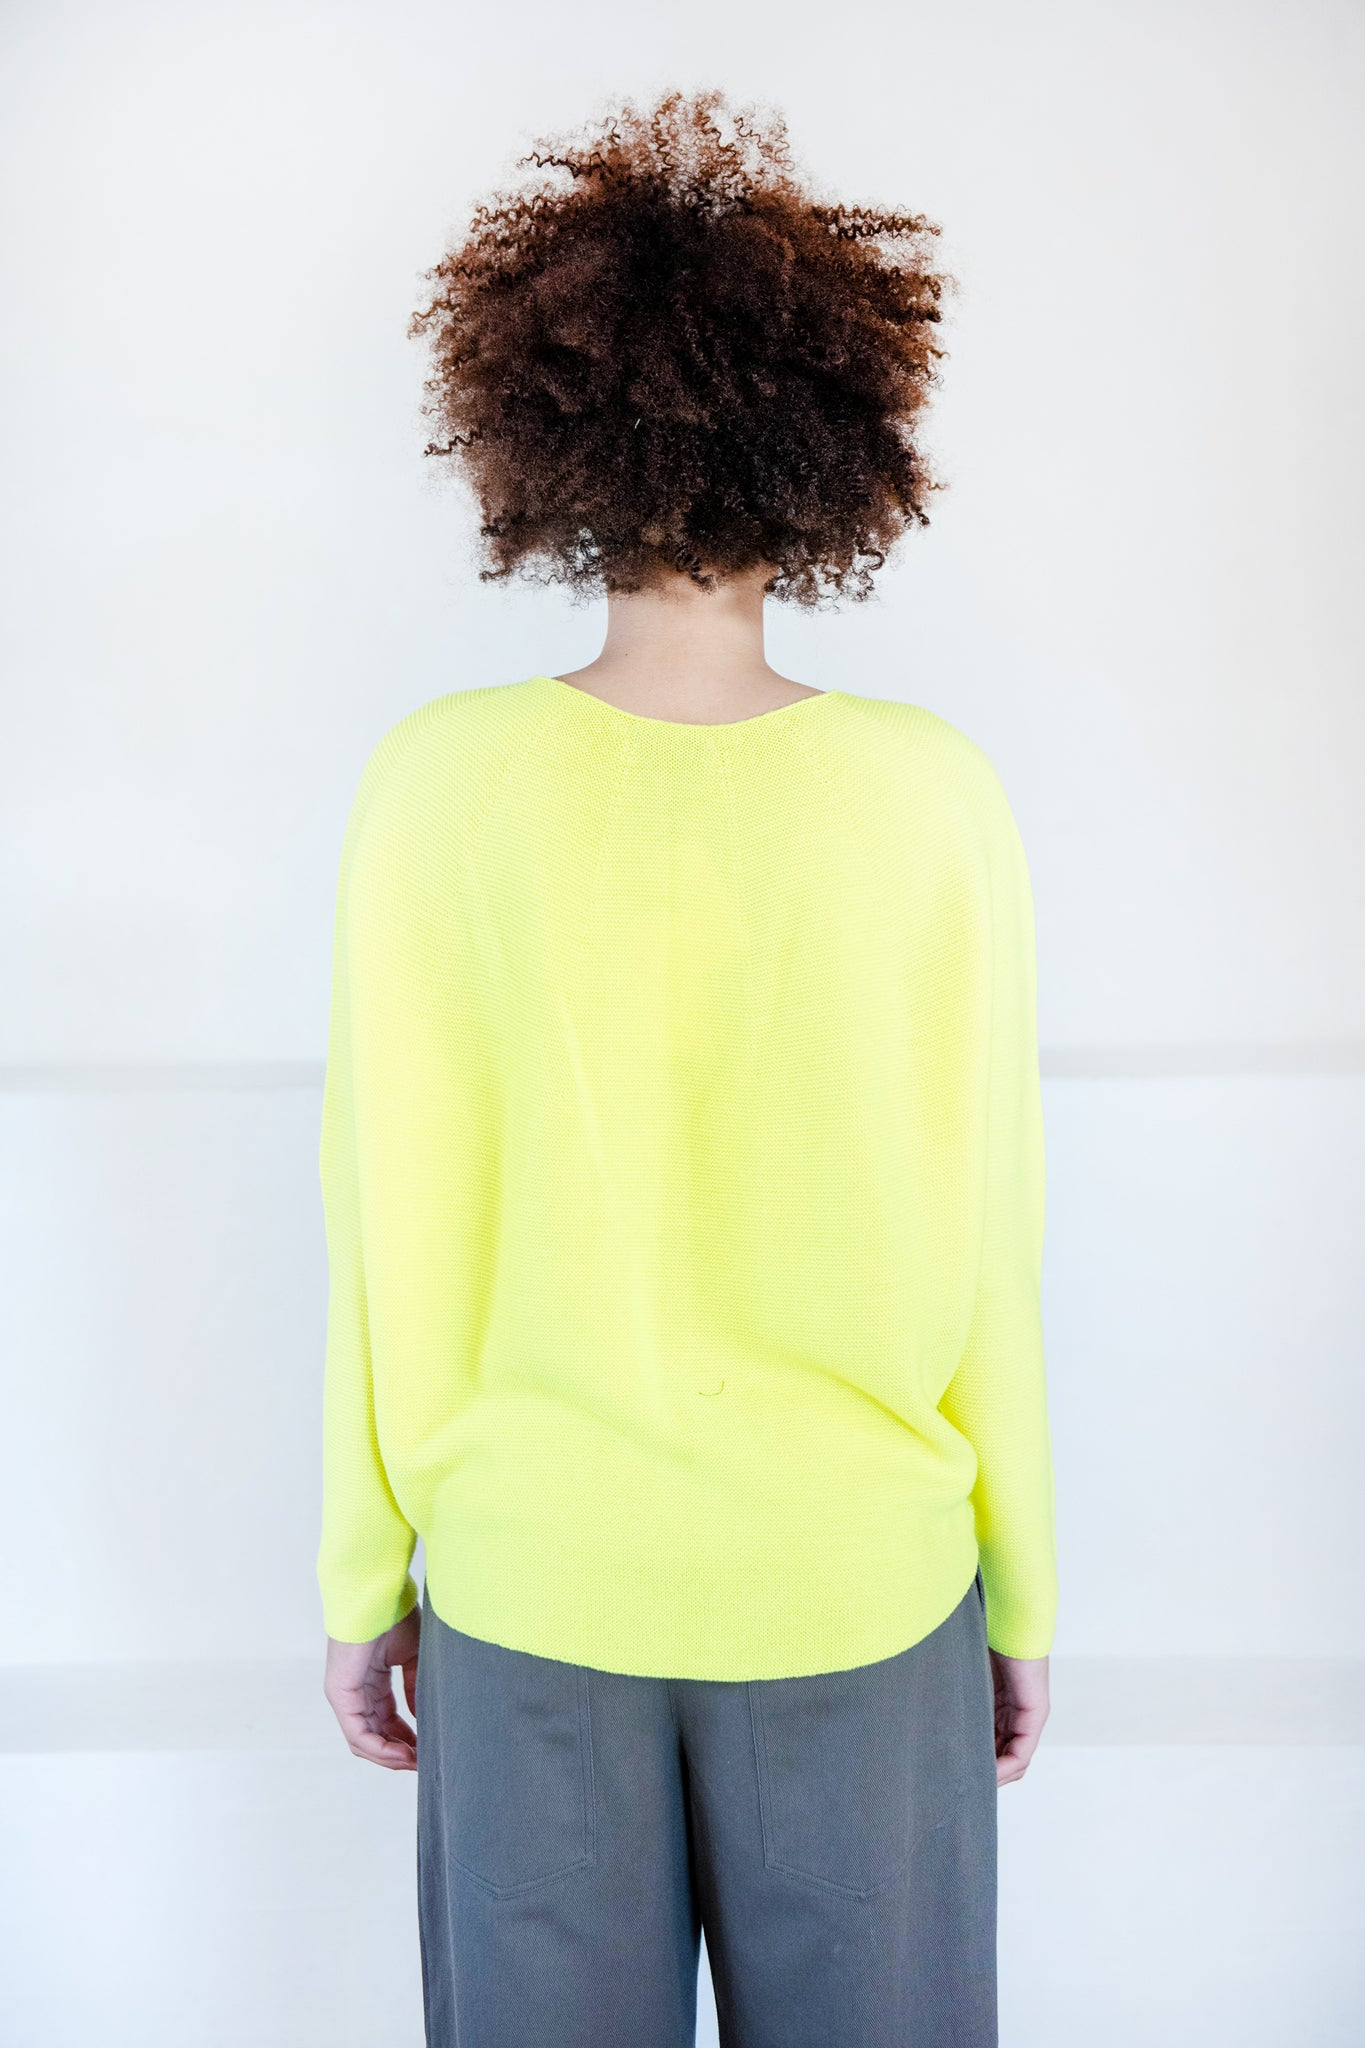 Christian Wijnants - KOPA wool sweater, yellow